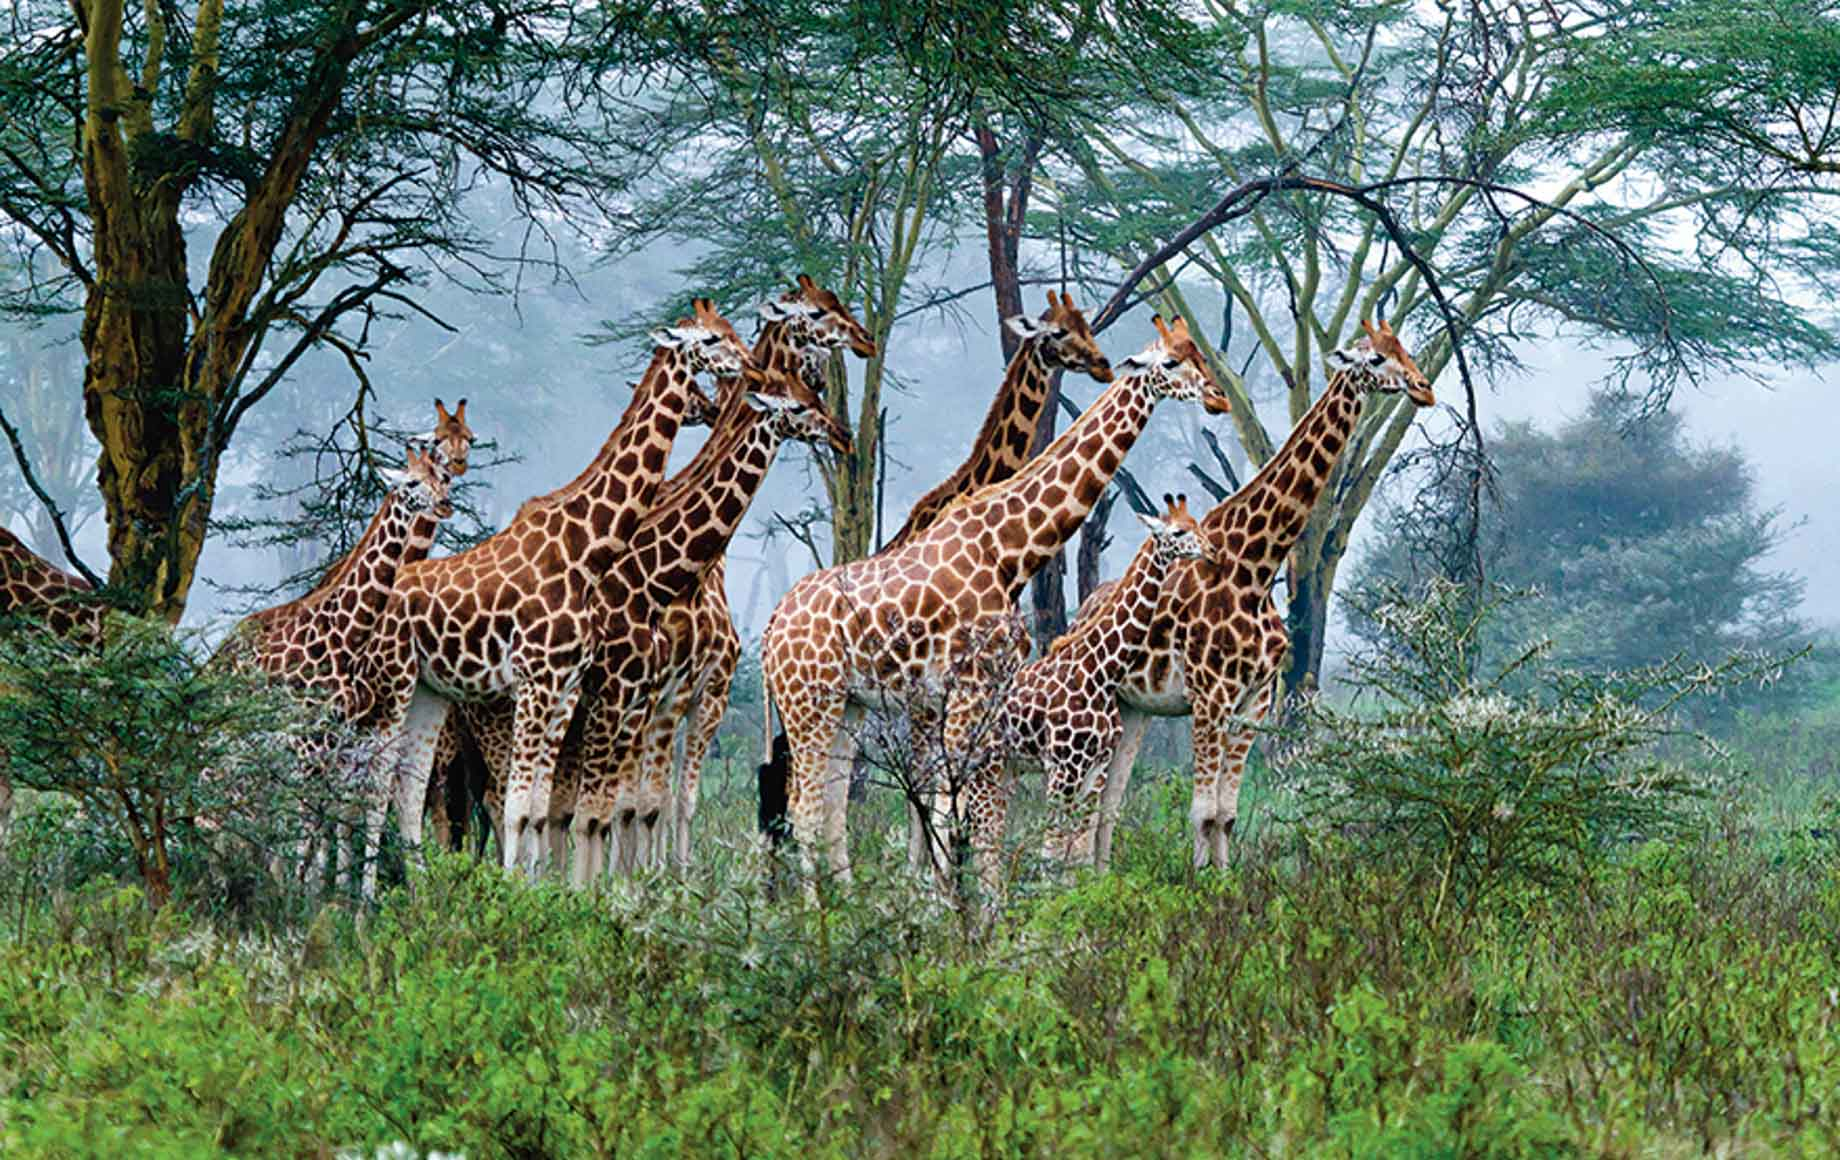 Giraffes and rhinos thrive at Lake Nakuru National Park